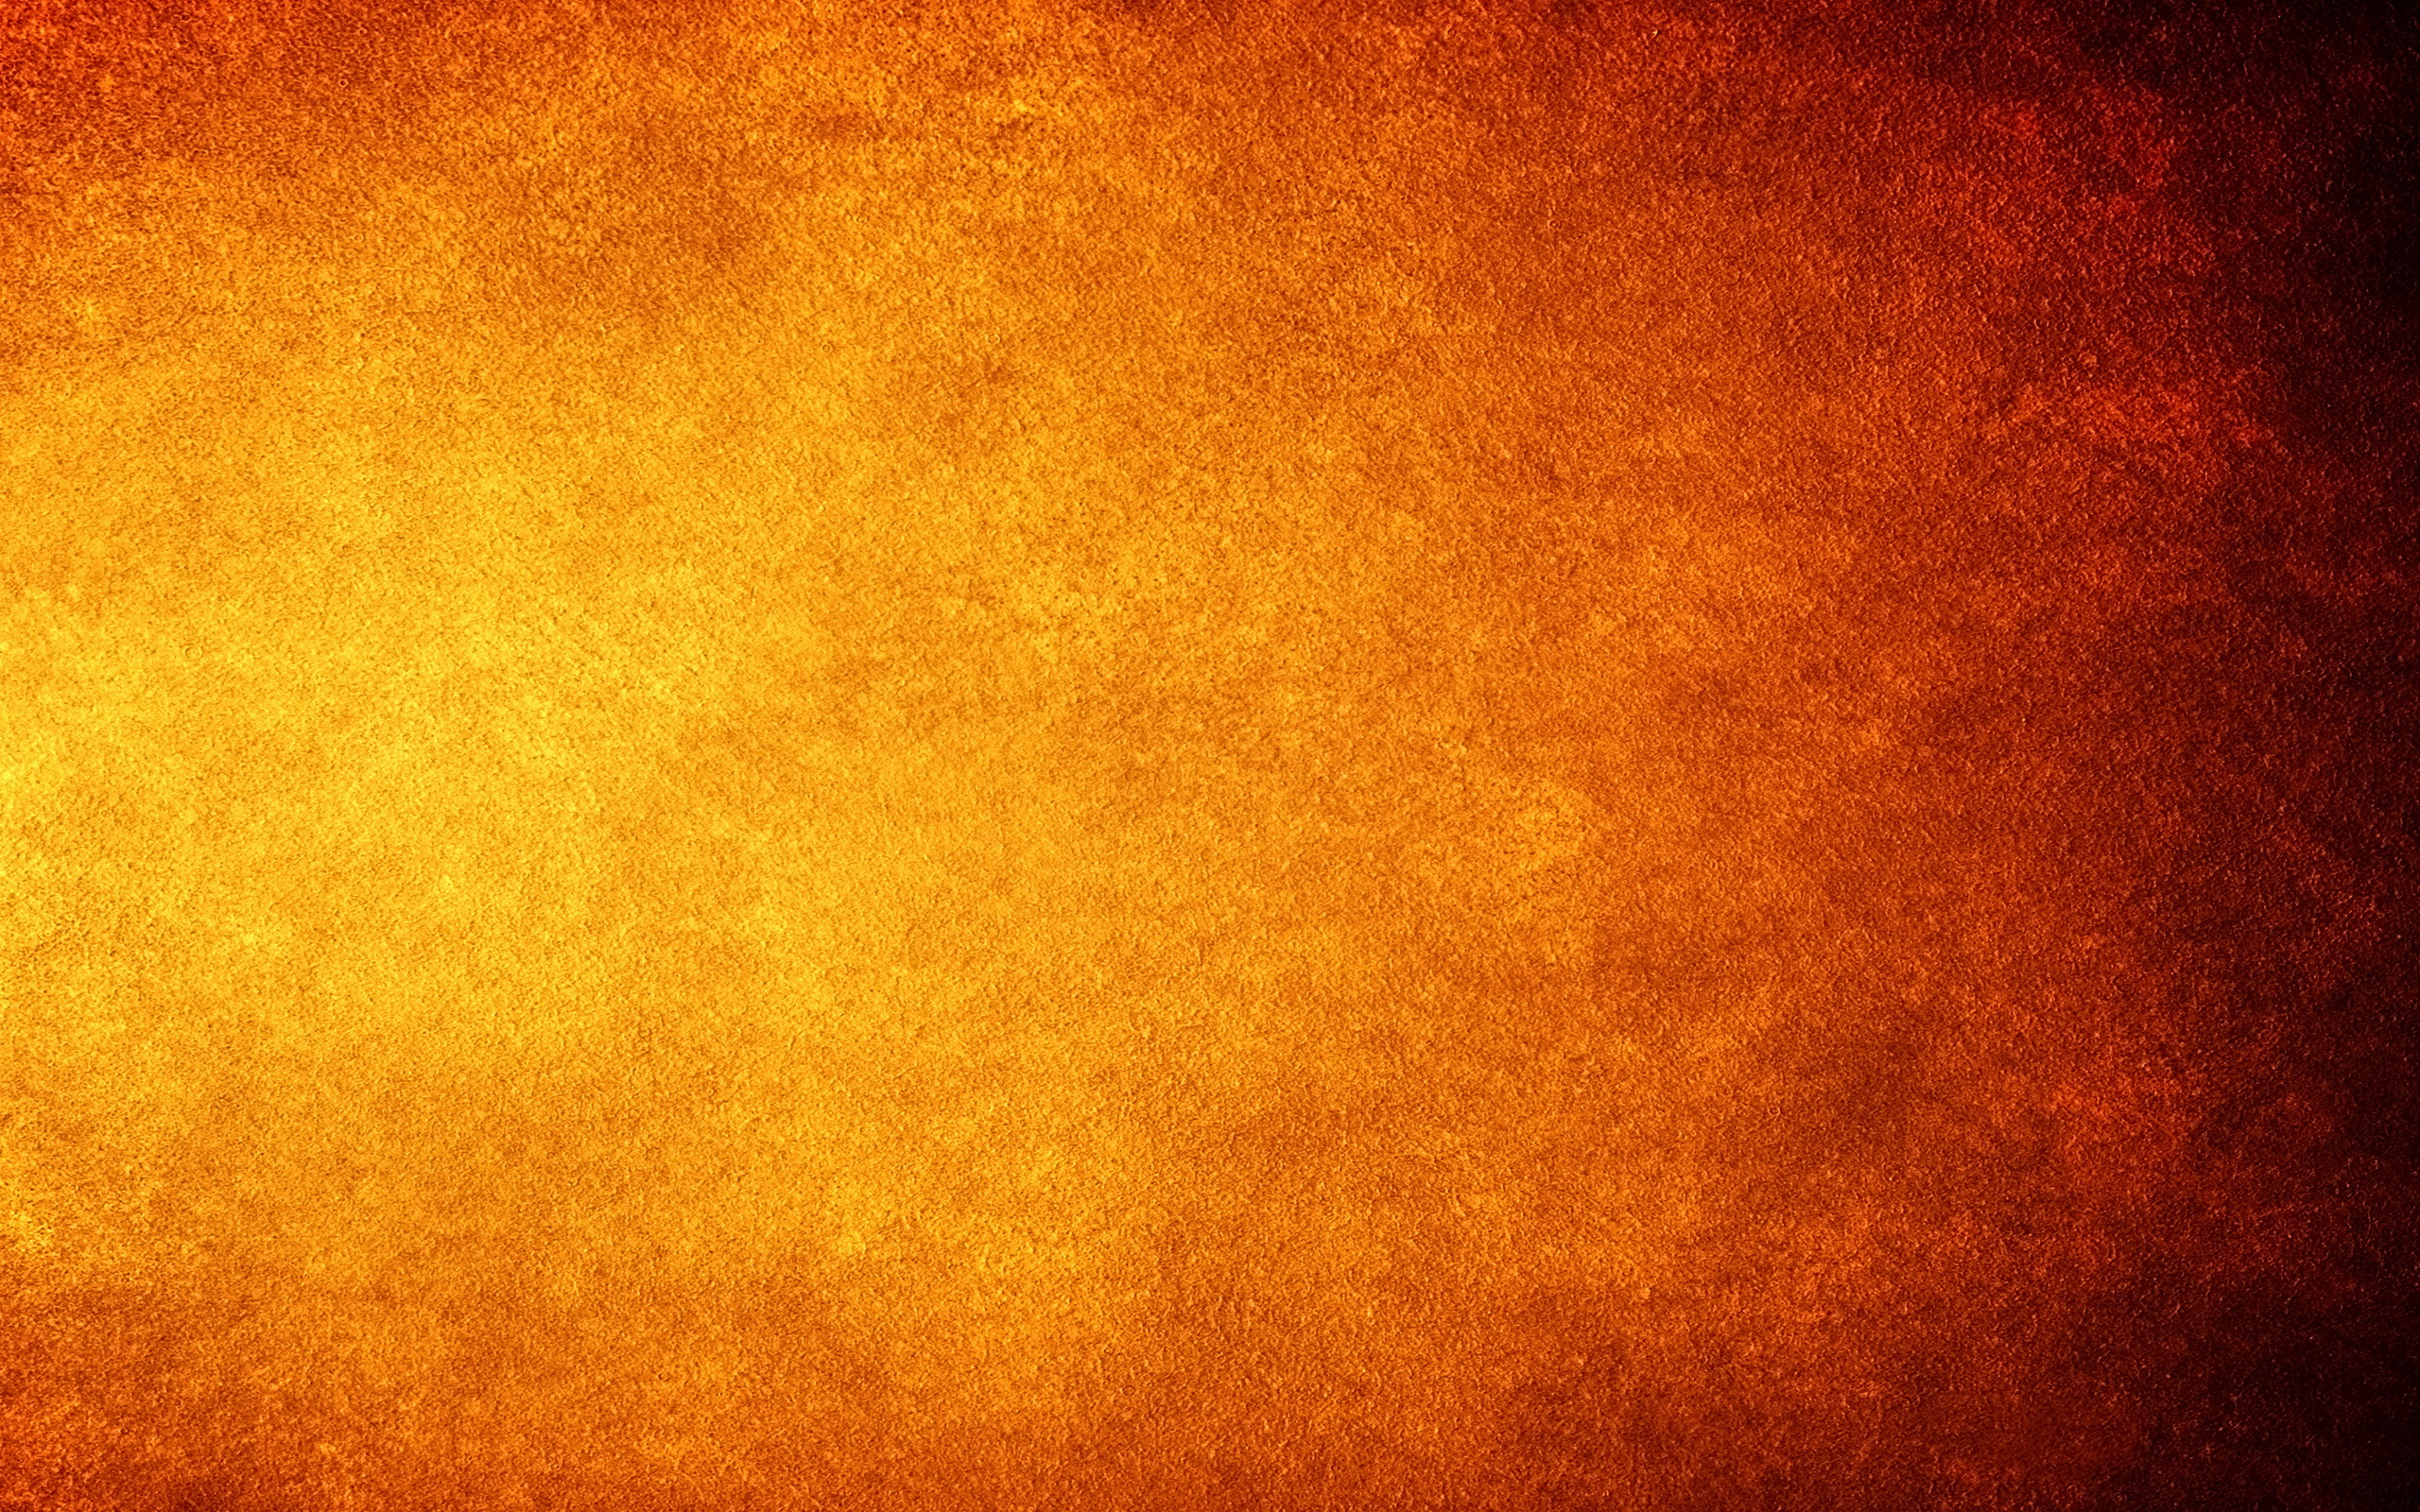 Orange Wallpaper Background Wallpapersafari HD Wallpapers Download Free Images Wallpaper [1000image.com]